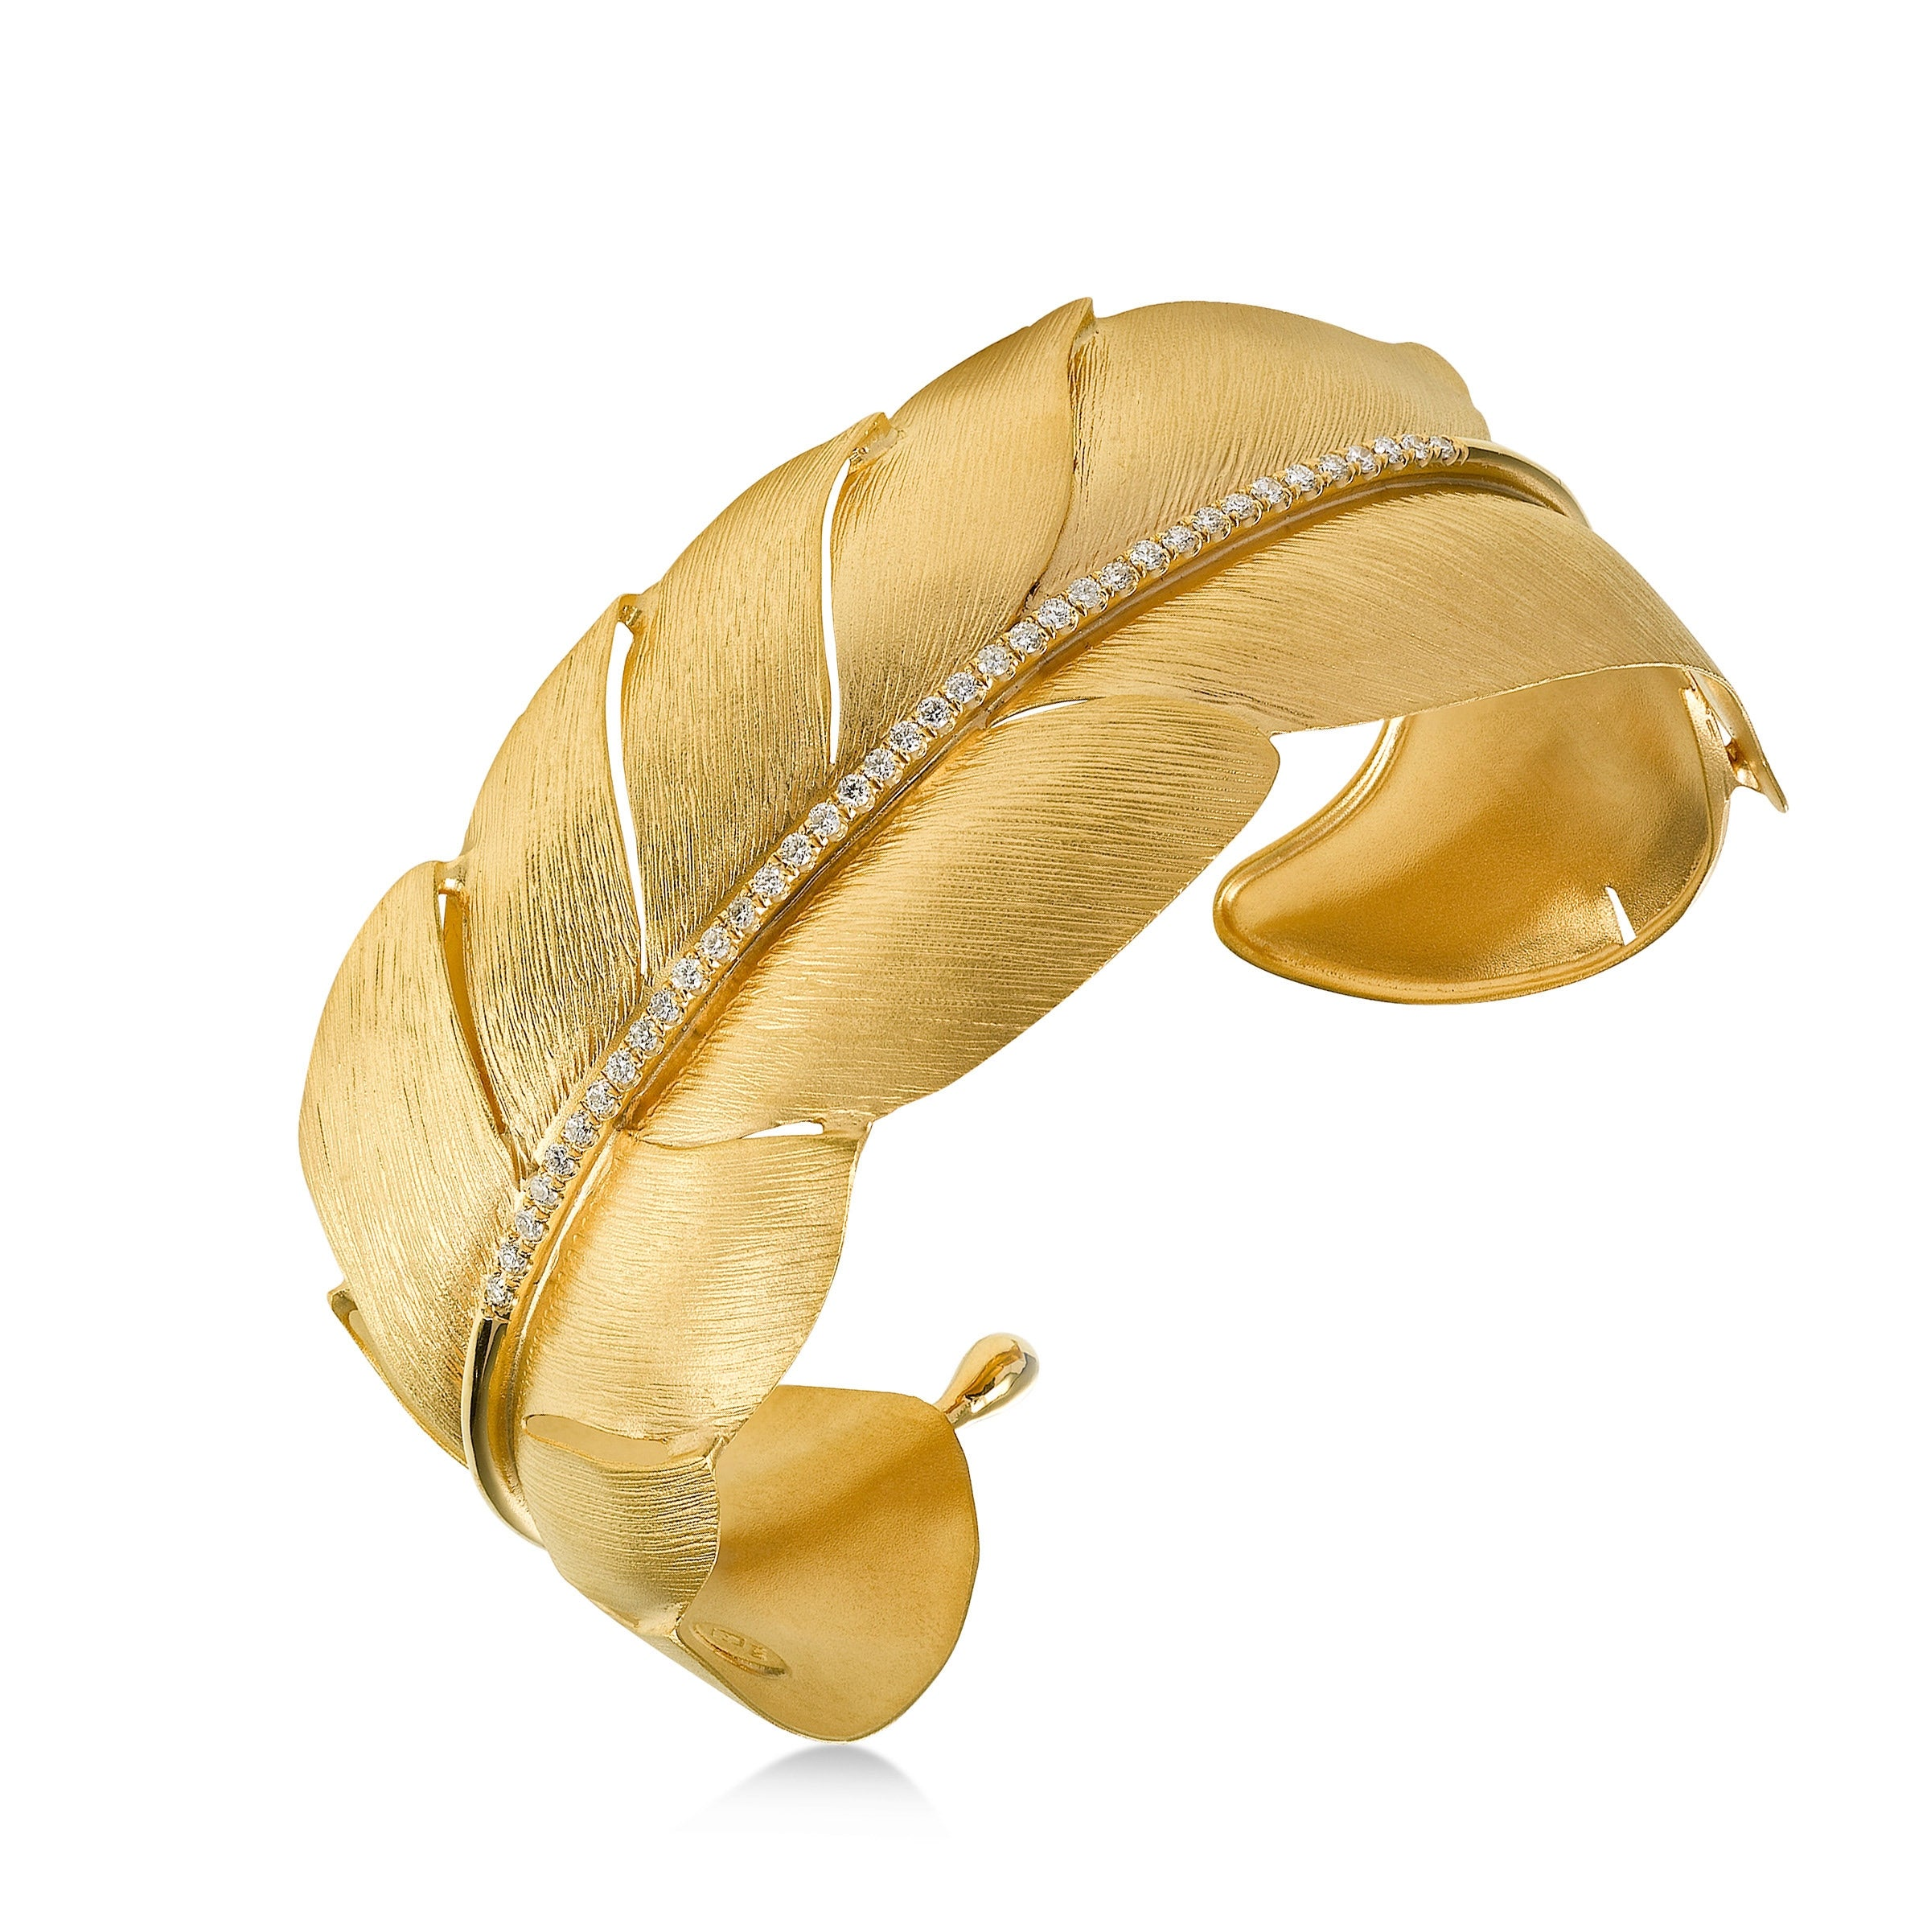 Diamond Feather Cuff Bracelet, 14K Yellow Gold